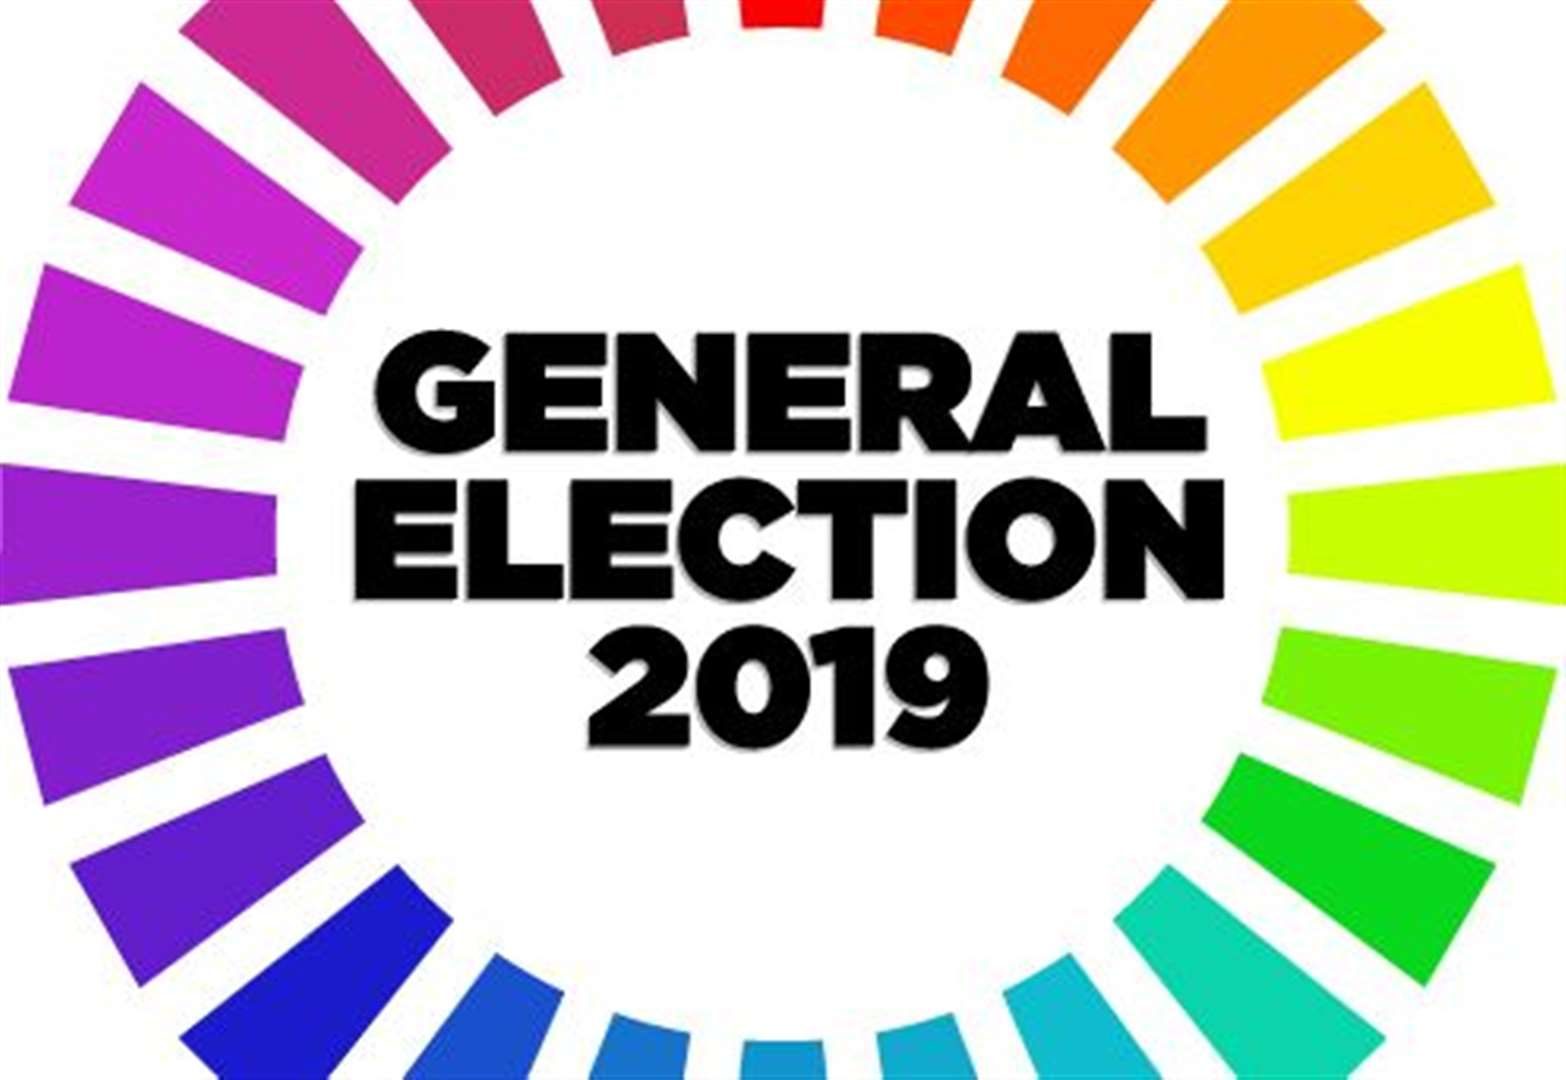 POLL: Will you be voting in the General Election?